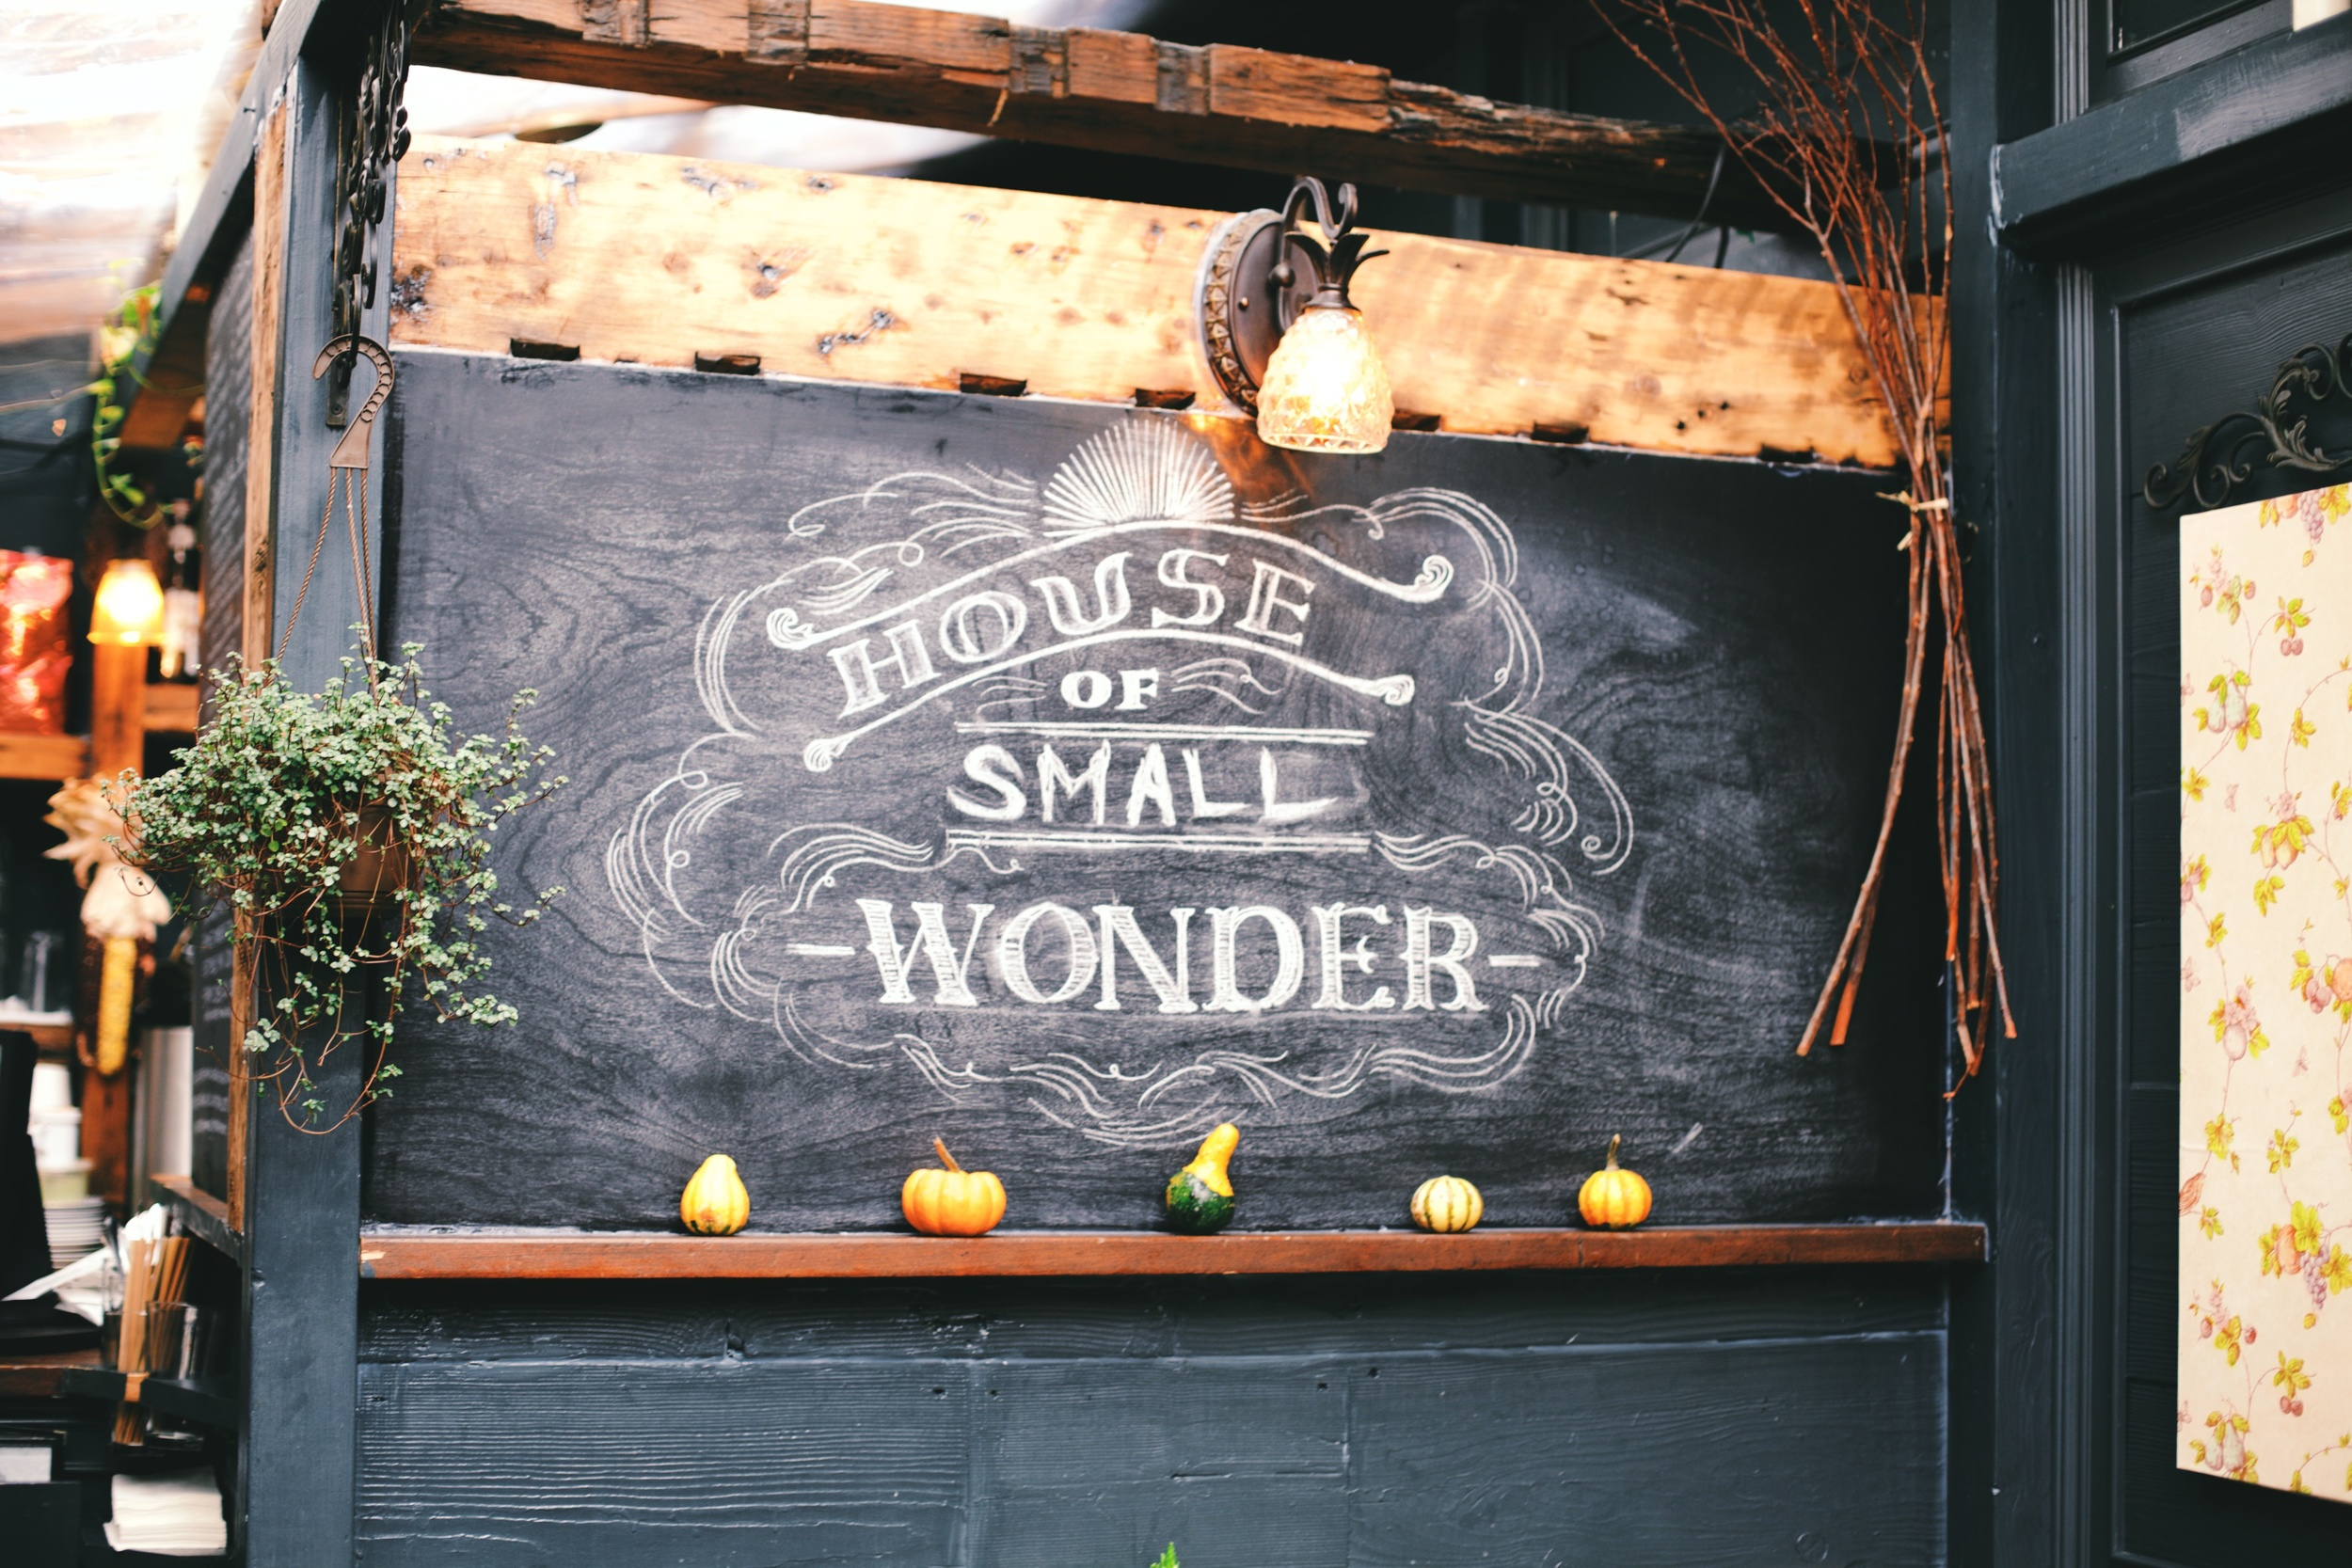 House_Of_Small_Wonder_1